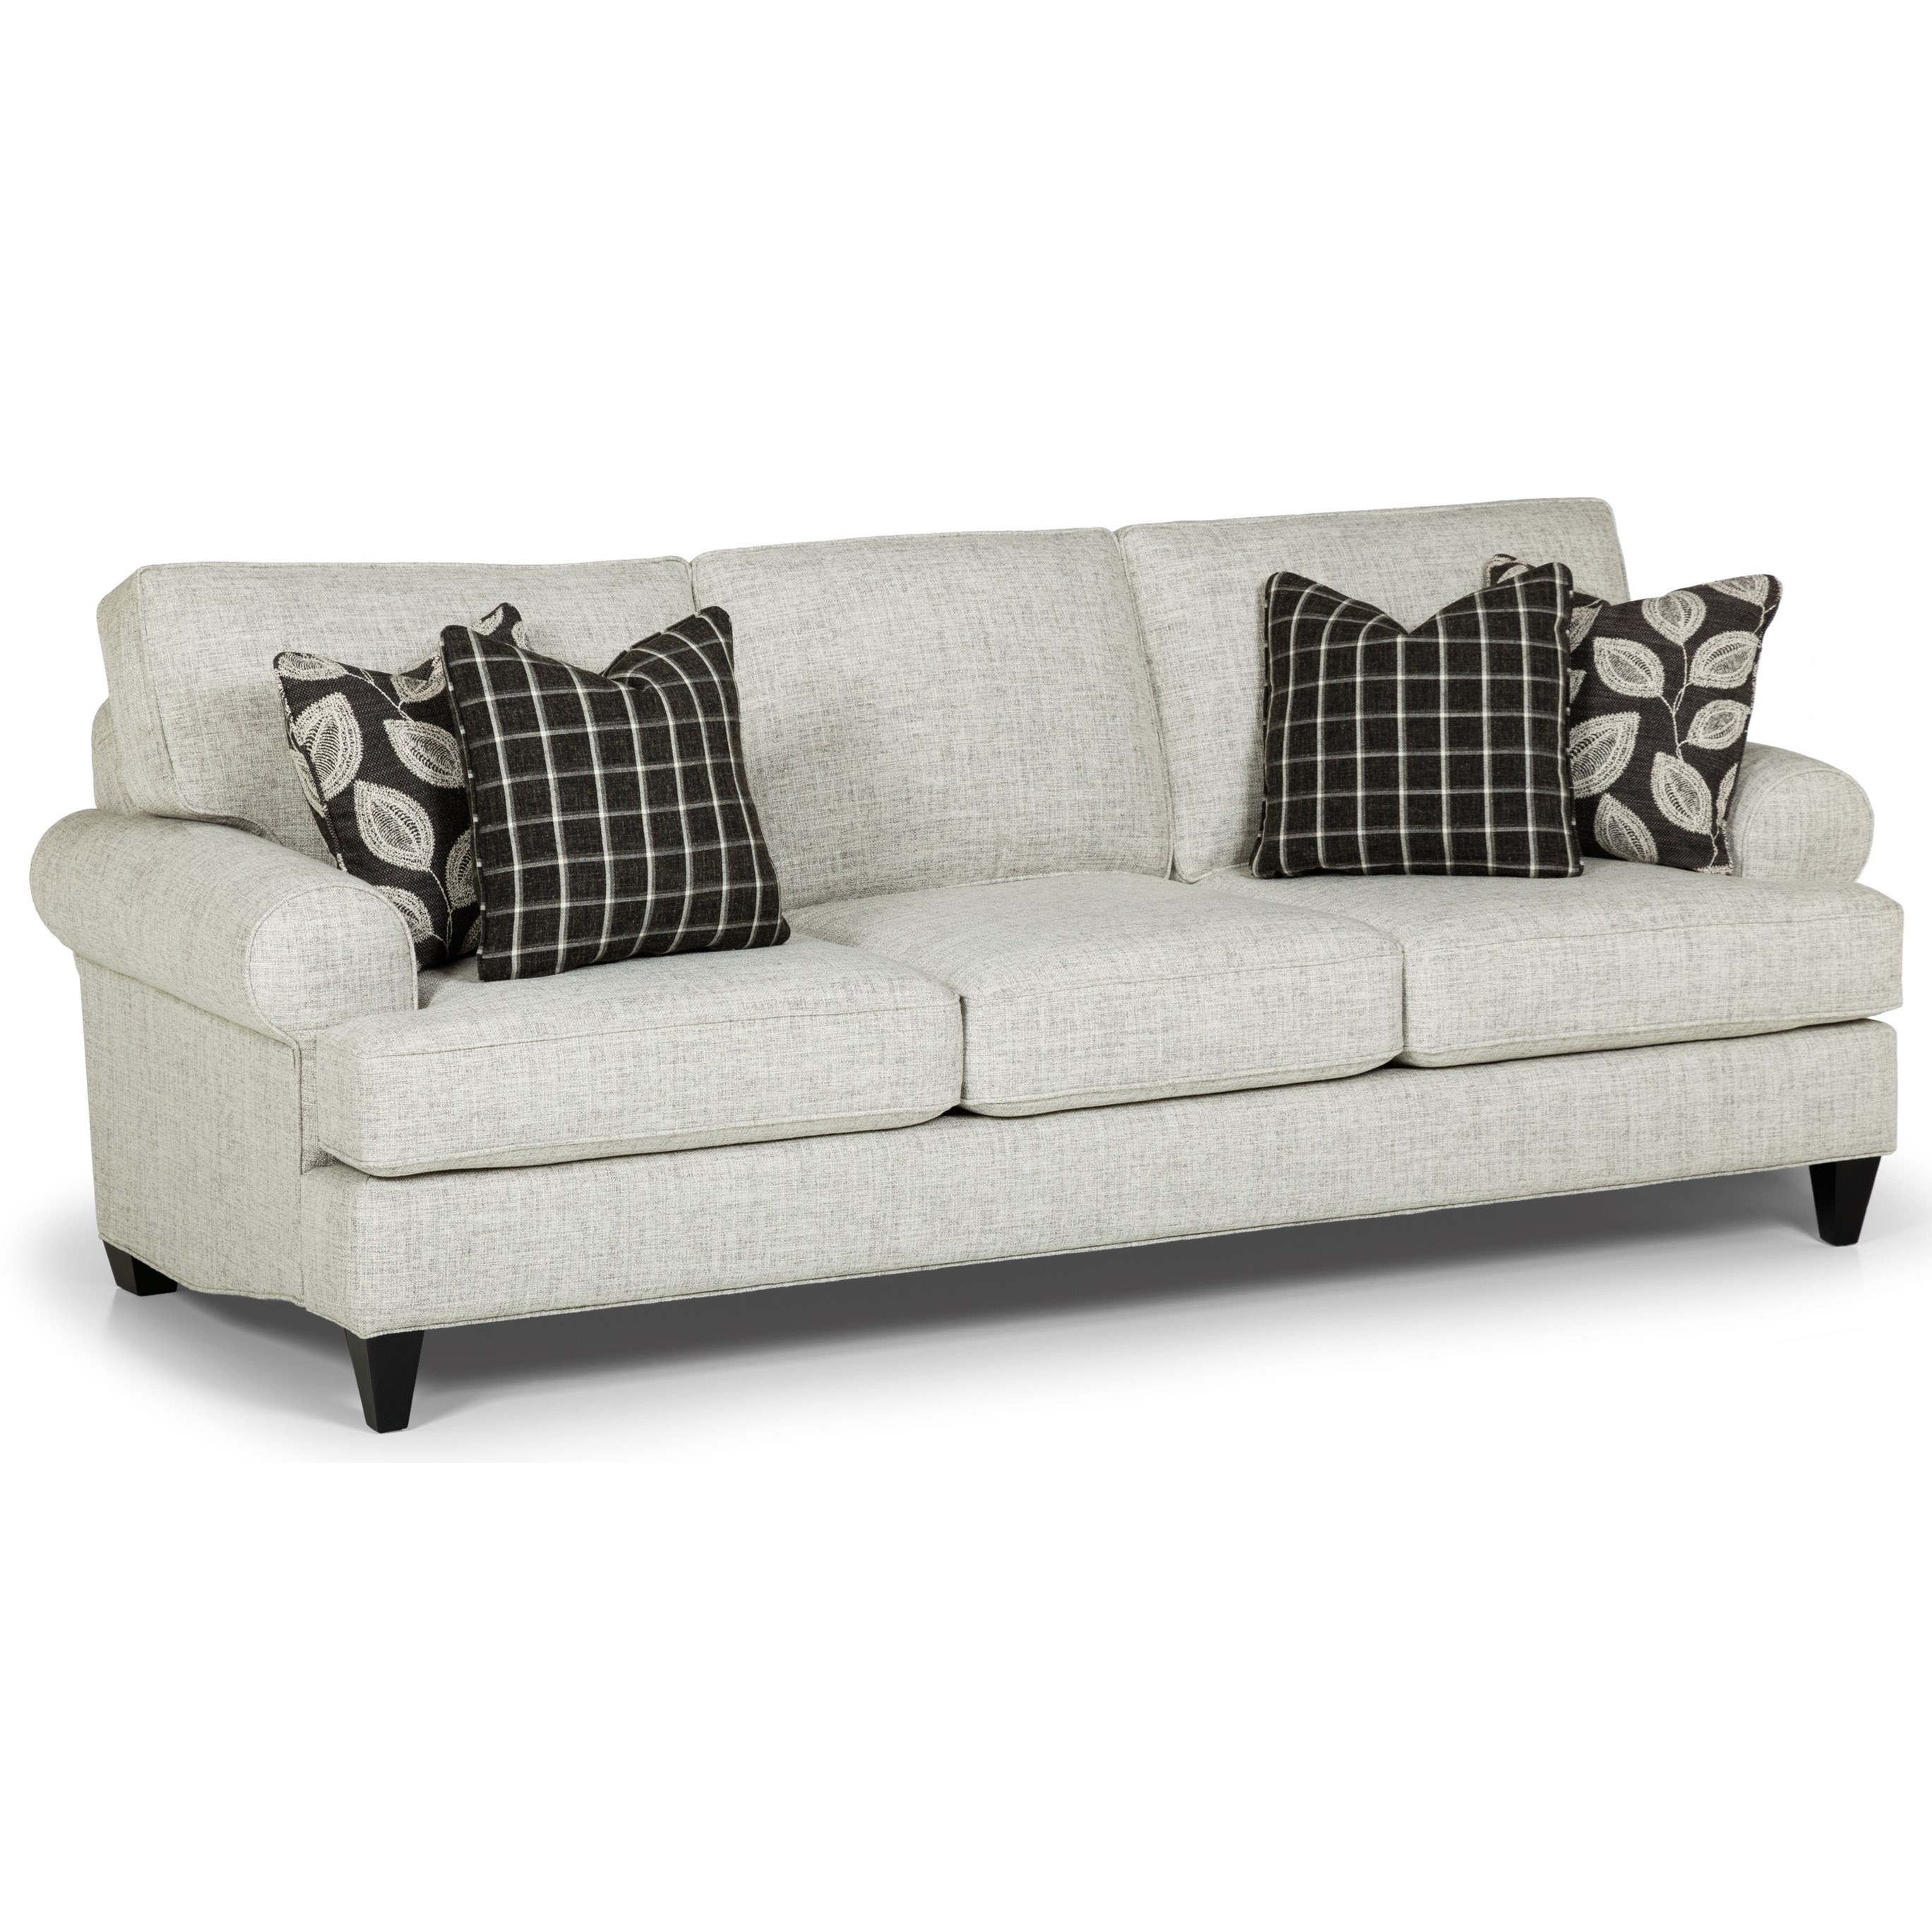 467 Sofa by Stanton at Rife's Home Furniture